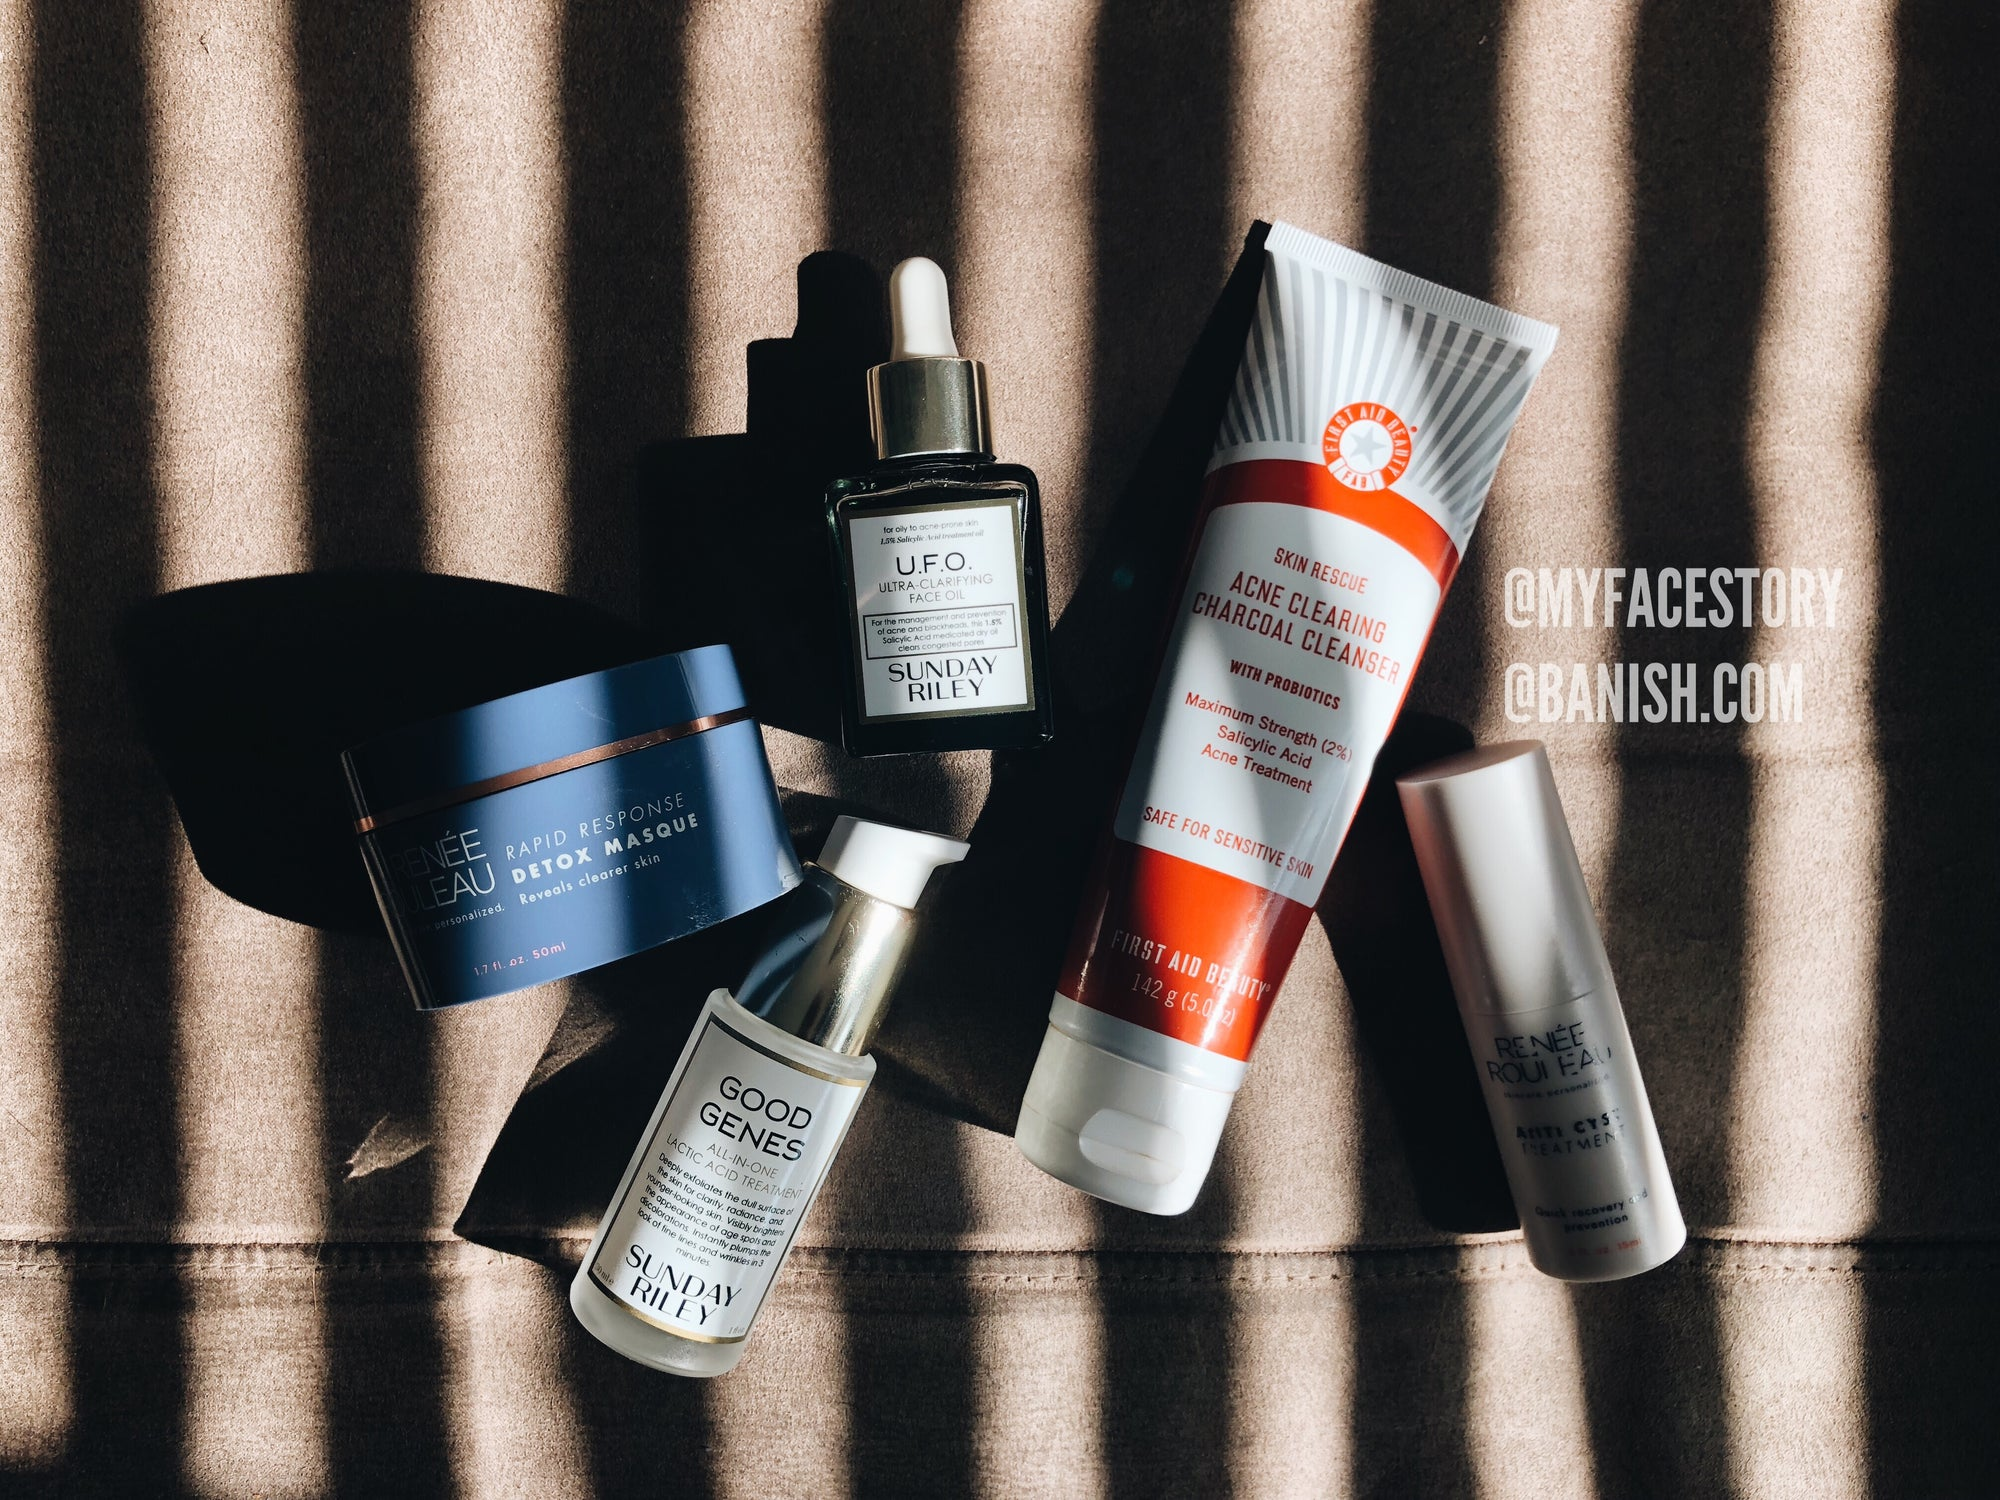 Top 5 Best Products for Cystic Acne